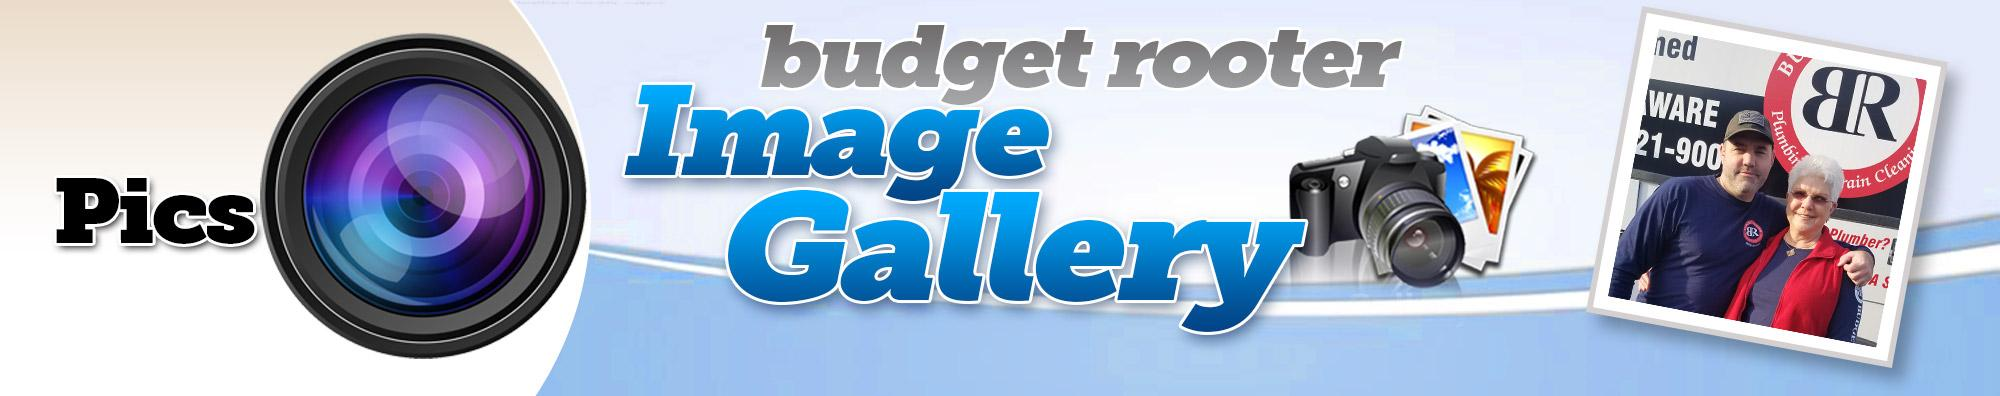 Image Gallery at Budget Rooter in Budget Rooterin New Castle County, DE